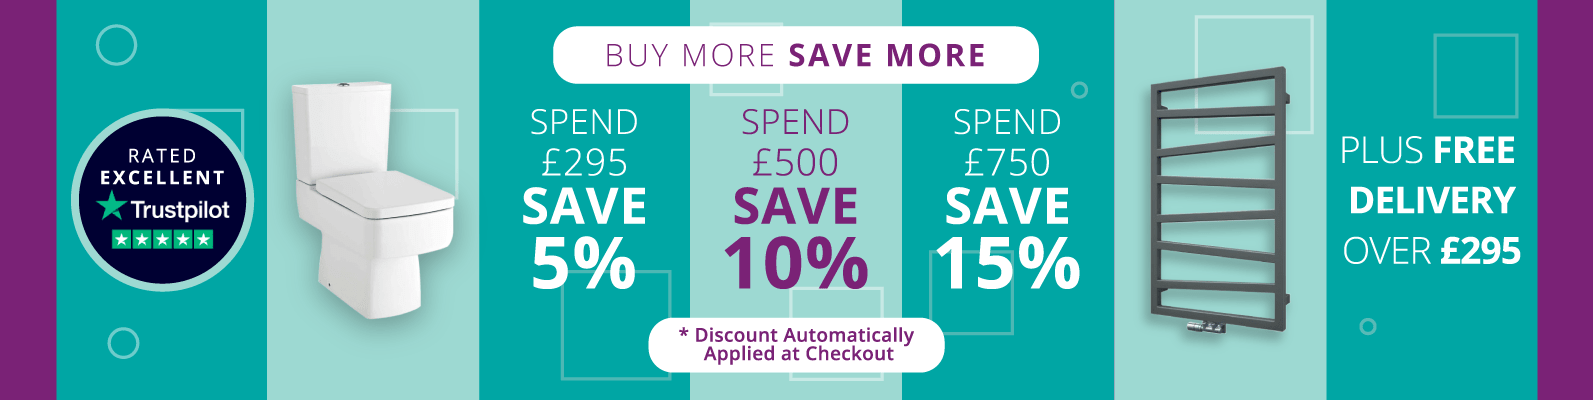 SPEND MORE SAVE MORE  Spend £295 SAVE 5% Spend £500 SAVE 10% Spend £750 SAVE 15%  Discount Applied at Checkout  SHOP NOW  PLUS FREE DELIVERY  Rated Excellent on Trustpilot